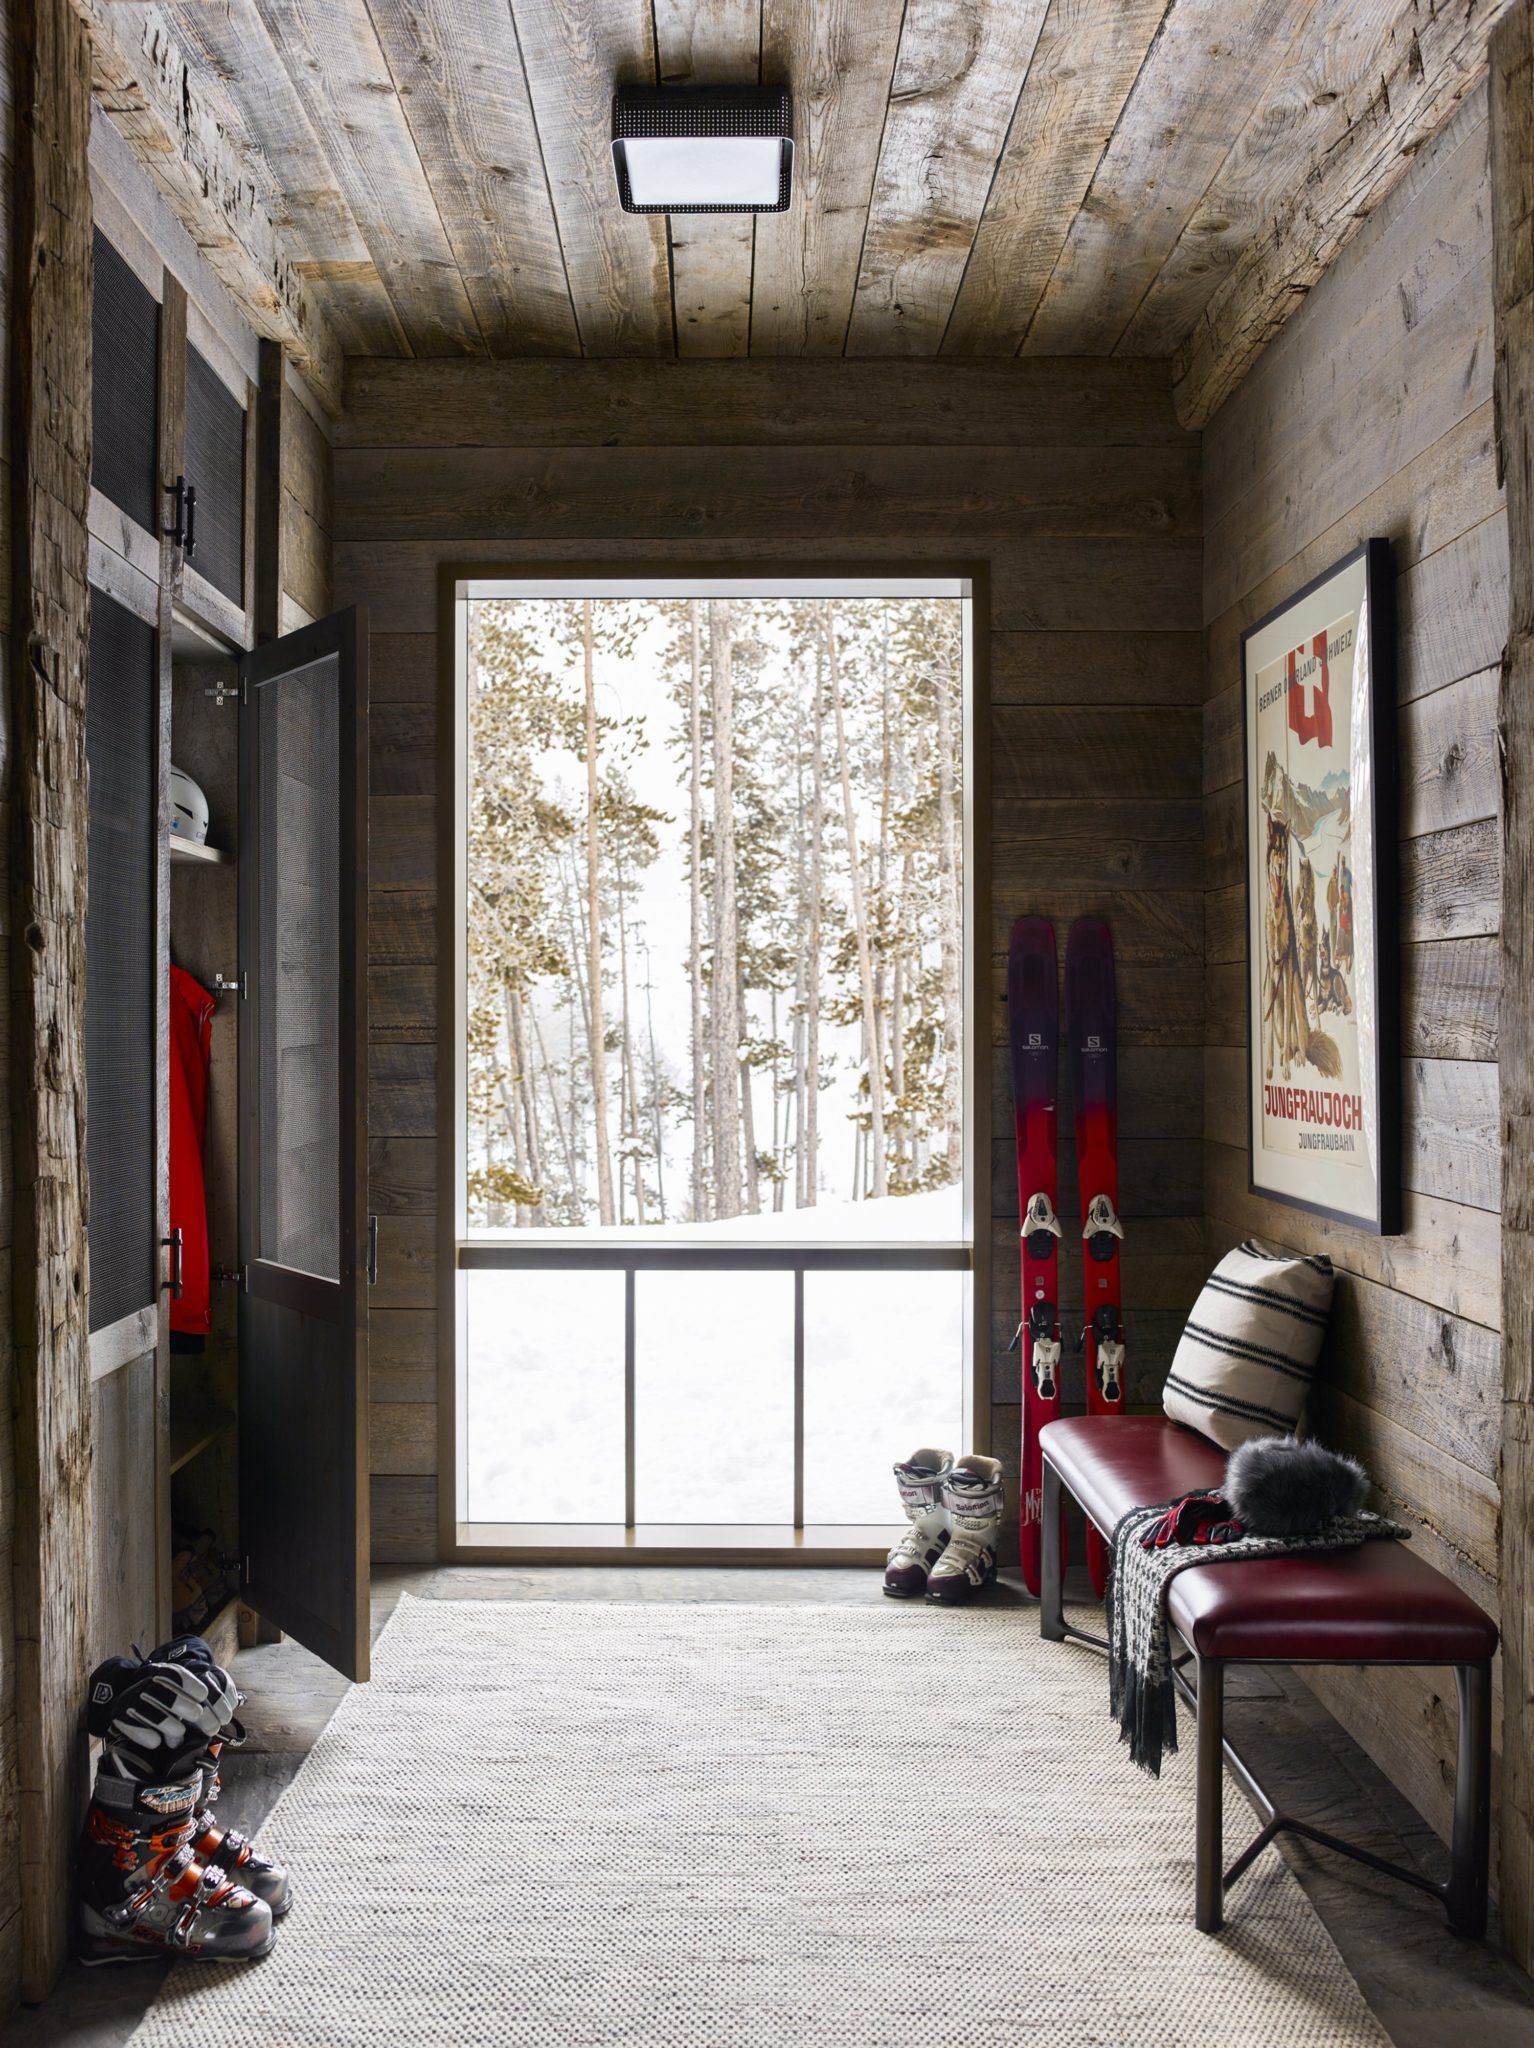 From the moment you enter the home, you are greeted by reclaimed wood walls and ceilings — which are present in much of the ski chalet's interior. A great place for storing ski gear and a winter wardrobe, the entryway is full of custom, built-in cabinetry. After a long day on the mountain, the family can rest their scarves or gloves on the sleek, bronze bench near the door. The bench is upholstered in Townsend leather, and decorated with a pillow in Schumacher fabric. To complete the design of the space, Shintaffer uses a surface mount from Circa Lighting, a vintage poster from Antikbar, and a wool tweed rug from Stacy Logan.